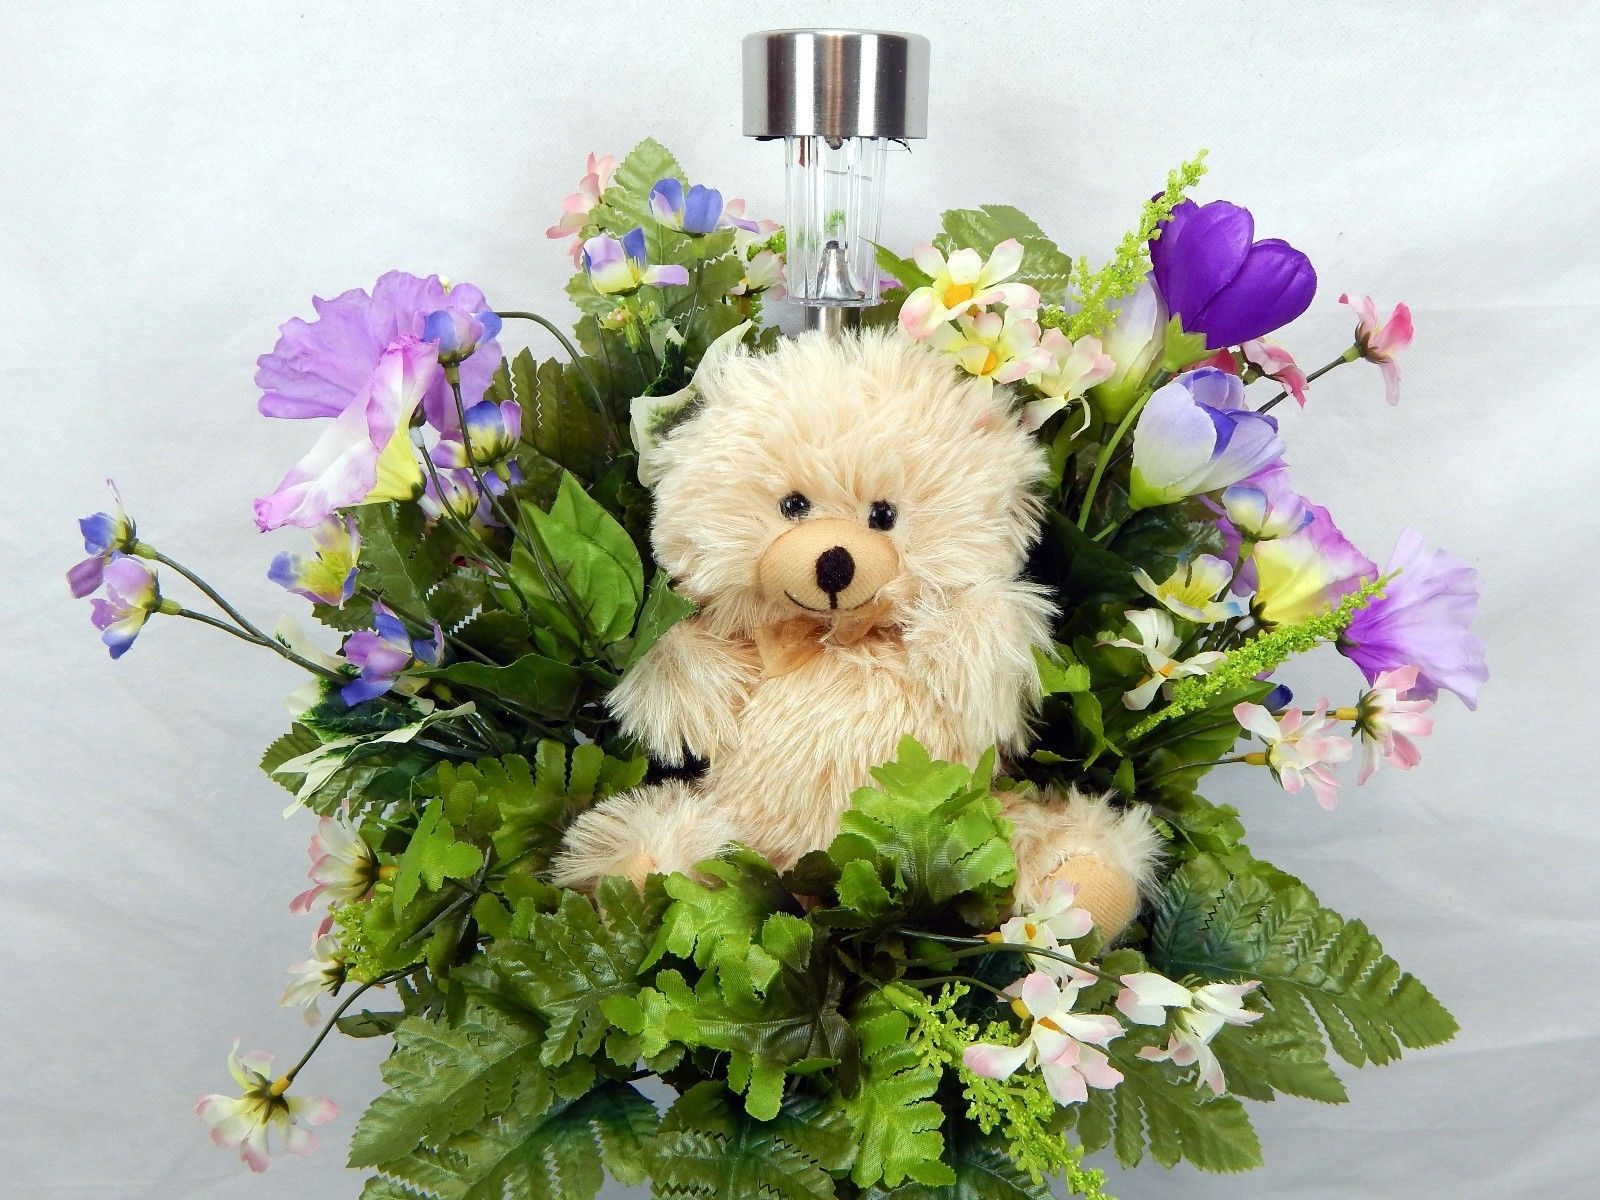 vase lite hat s pin in dancing child santa vases solar teddy bear flower memorial with cemetery christmas package new